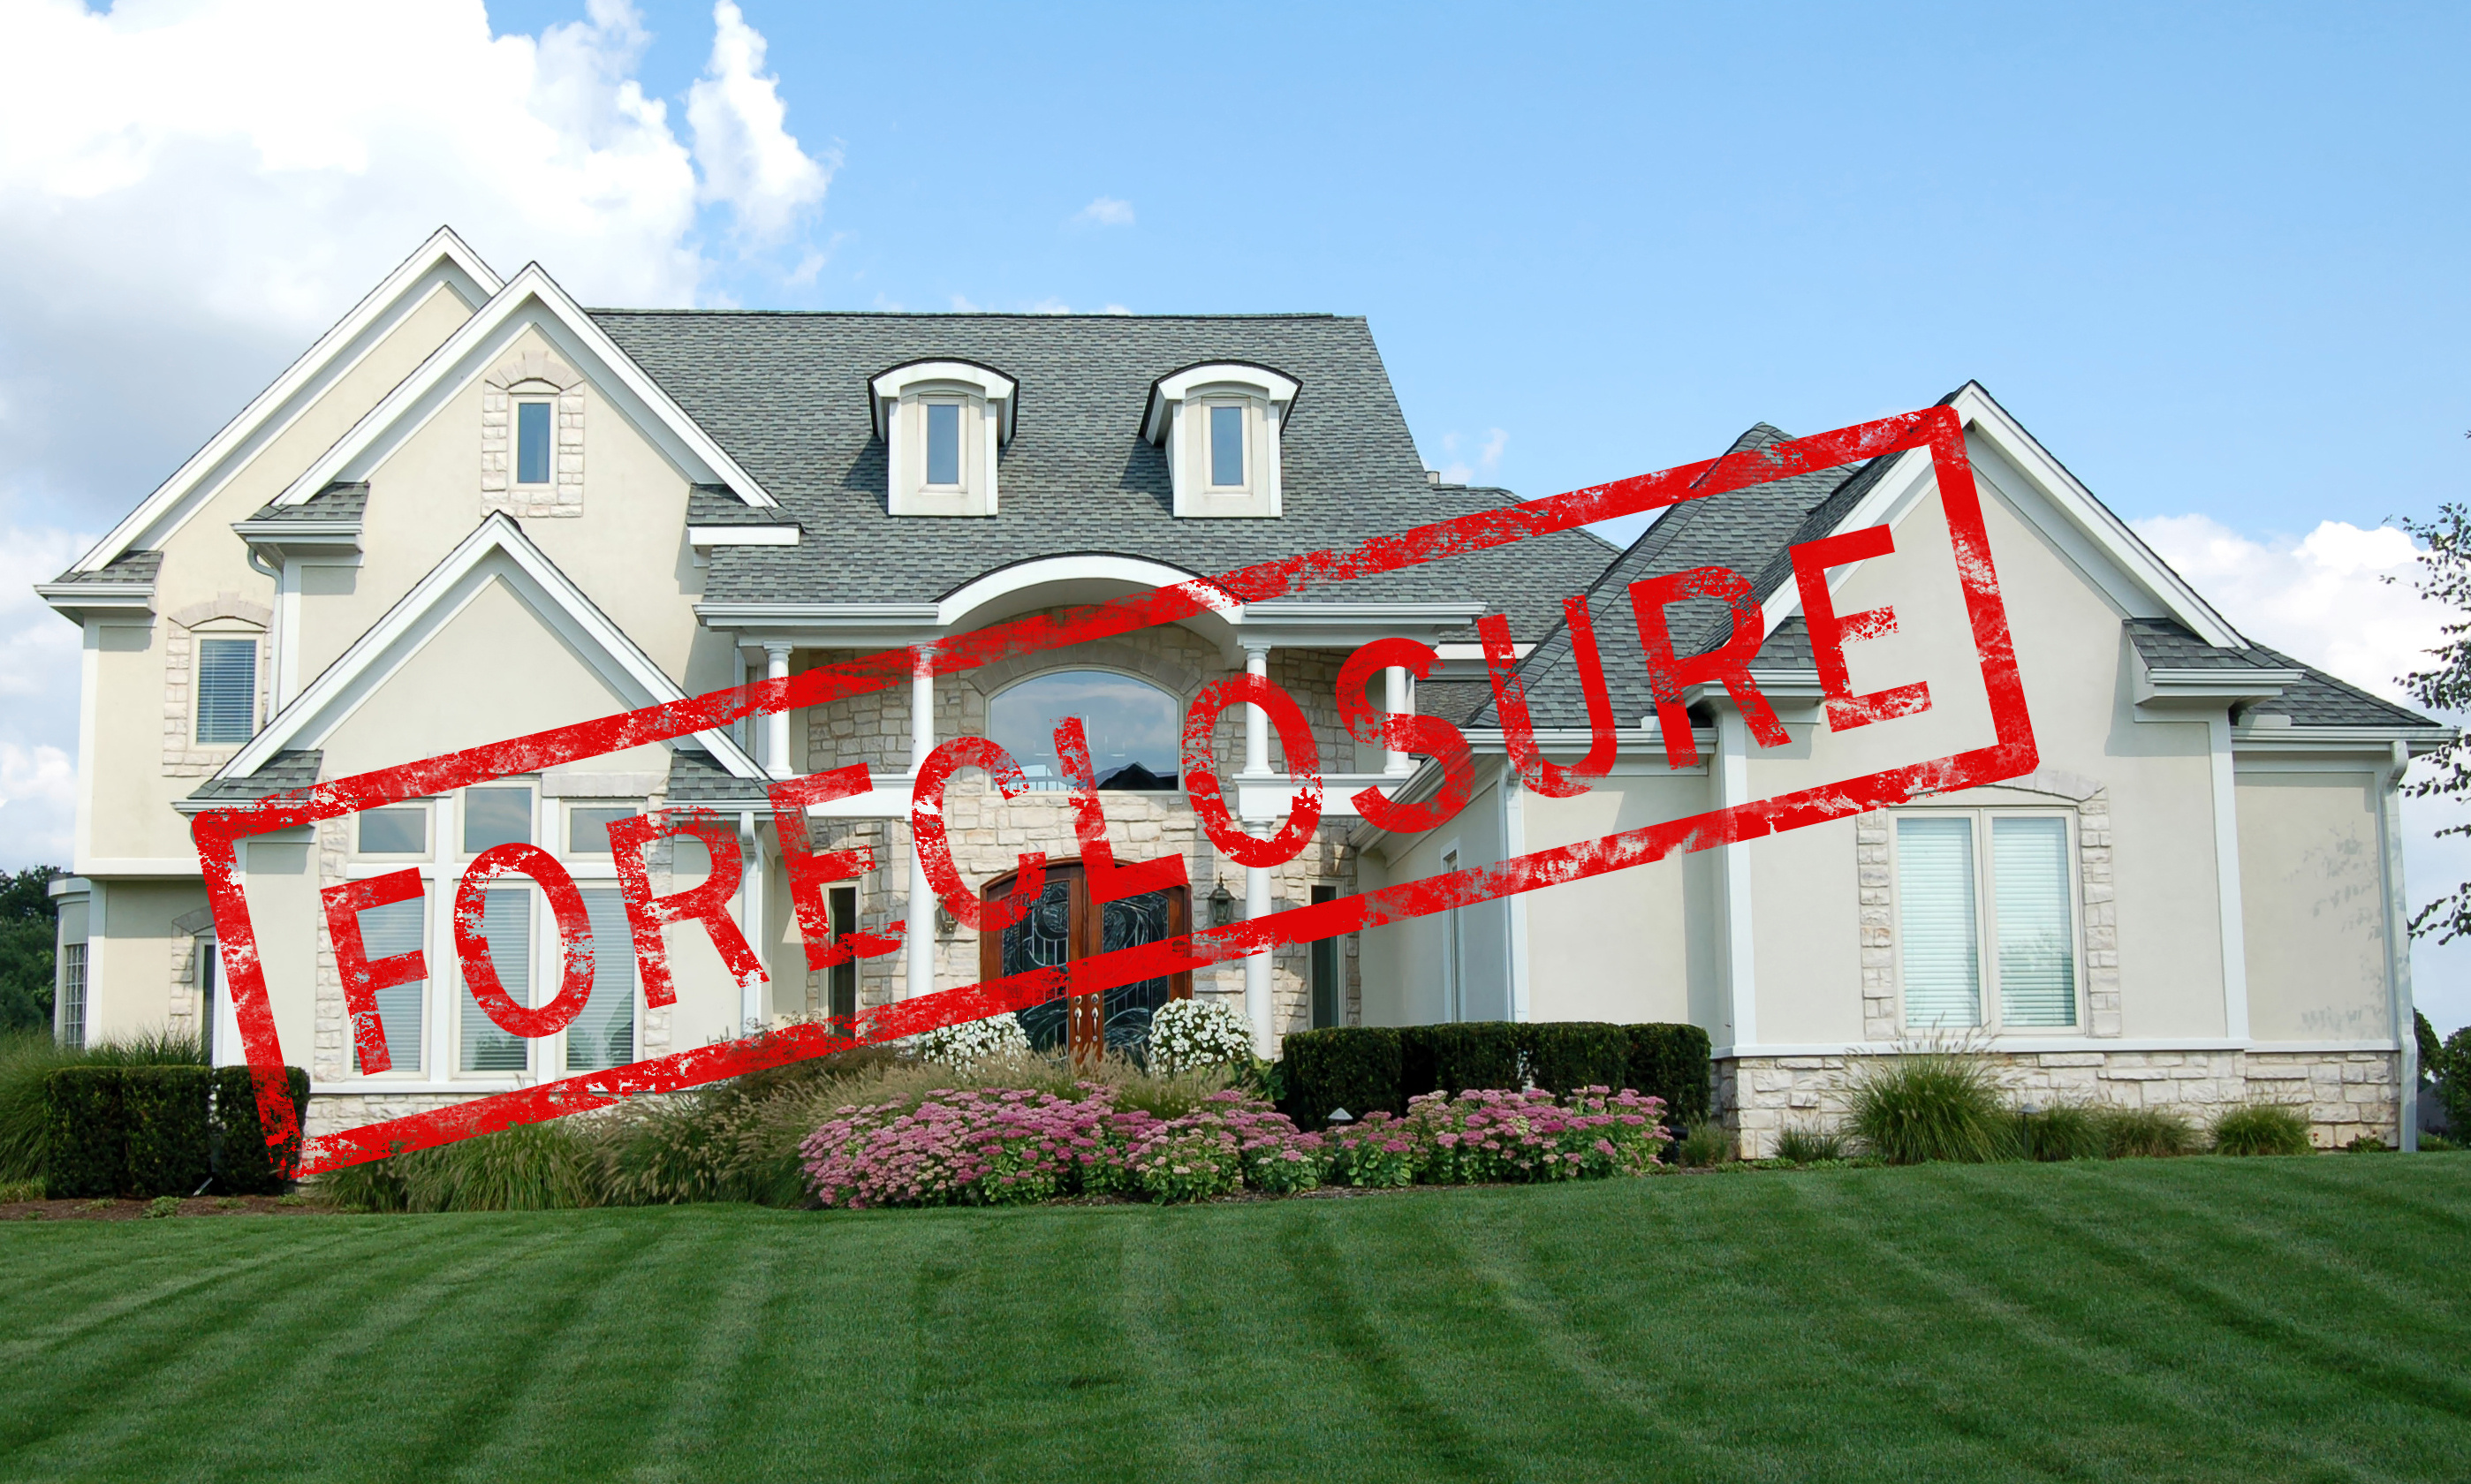 Call Allied Real Estate Appraisers to discuss valuations for Genesee foreclosures